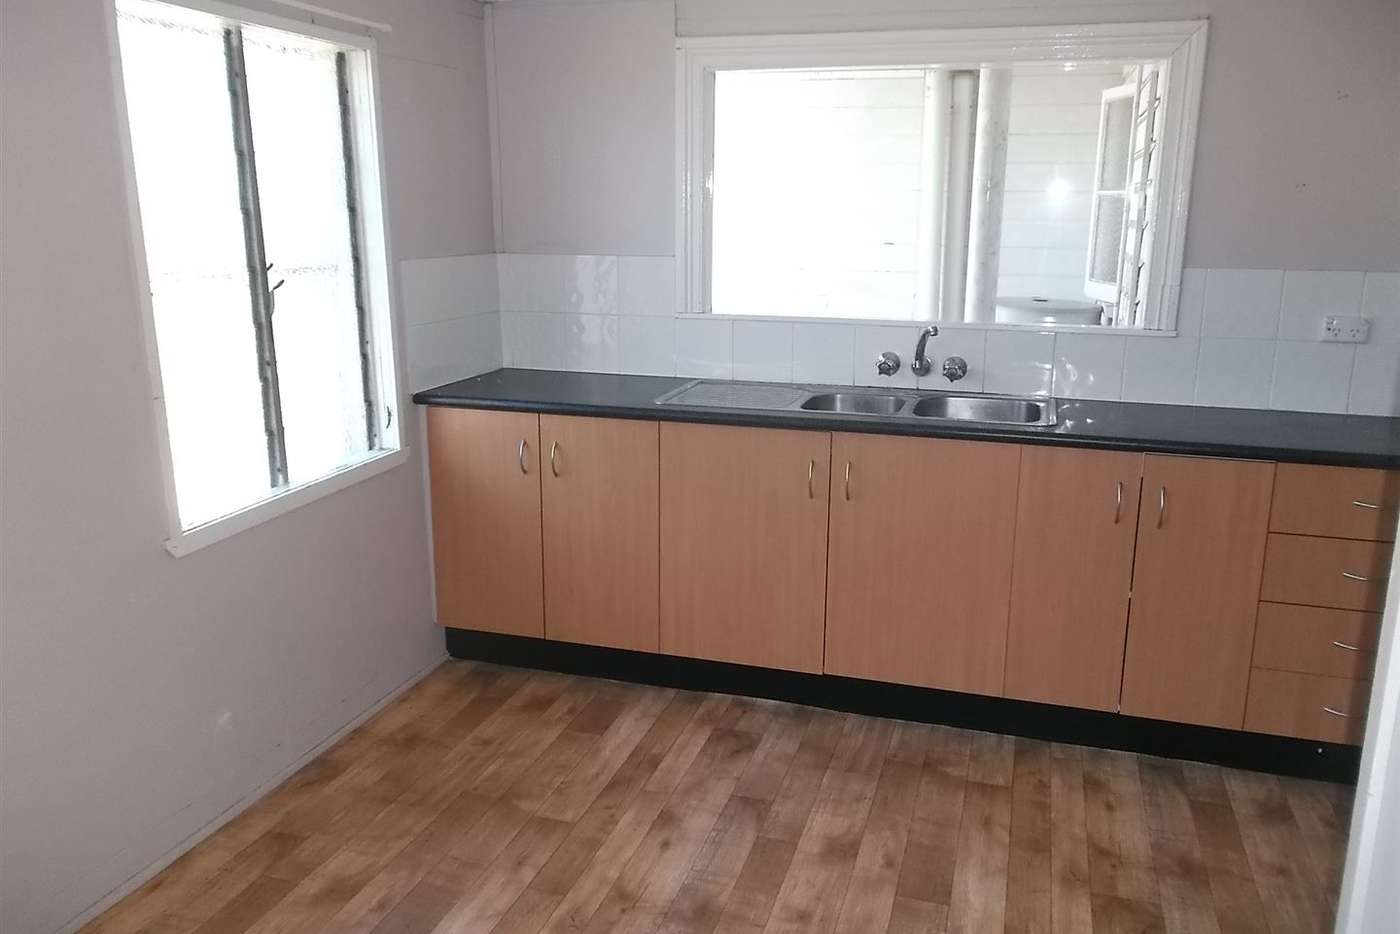 Main view of Homely unit listing, 1/128 Wilmington Street, Ayr QLD 4807